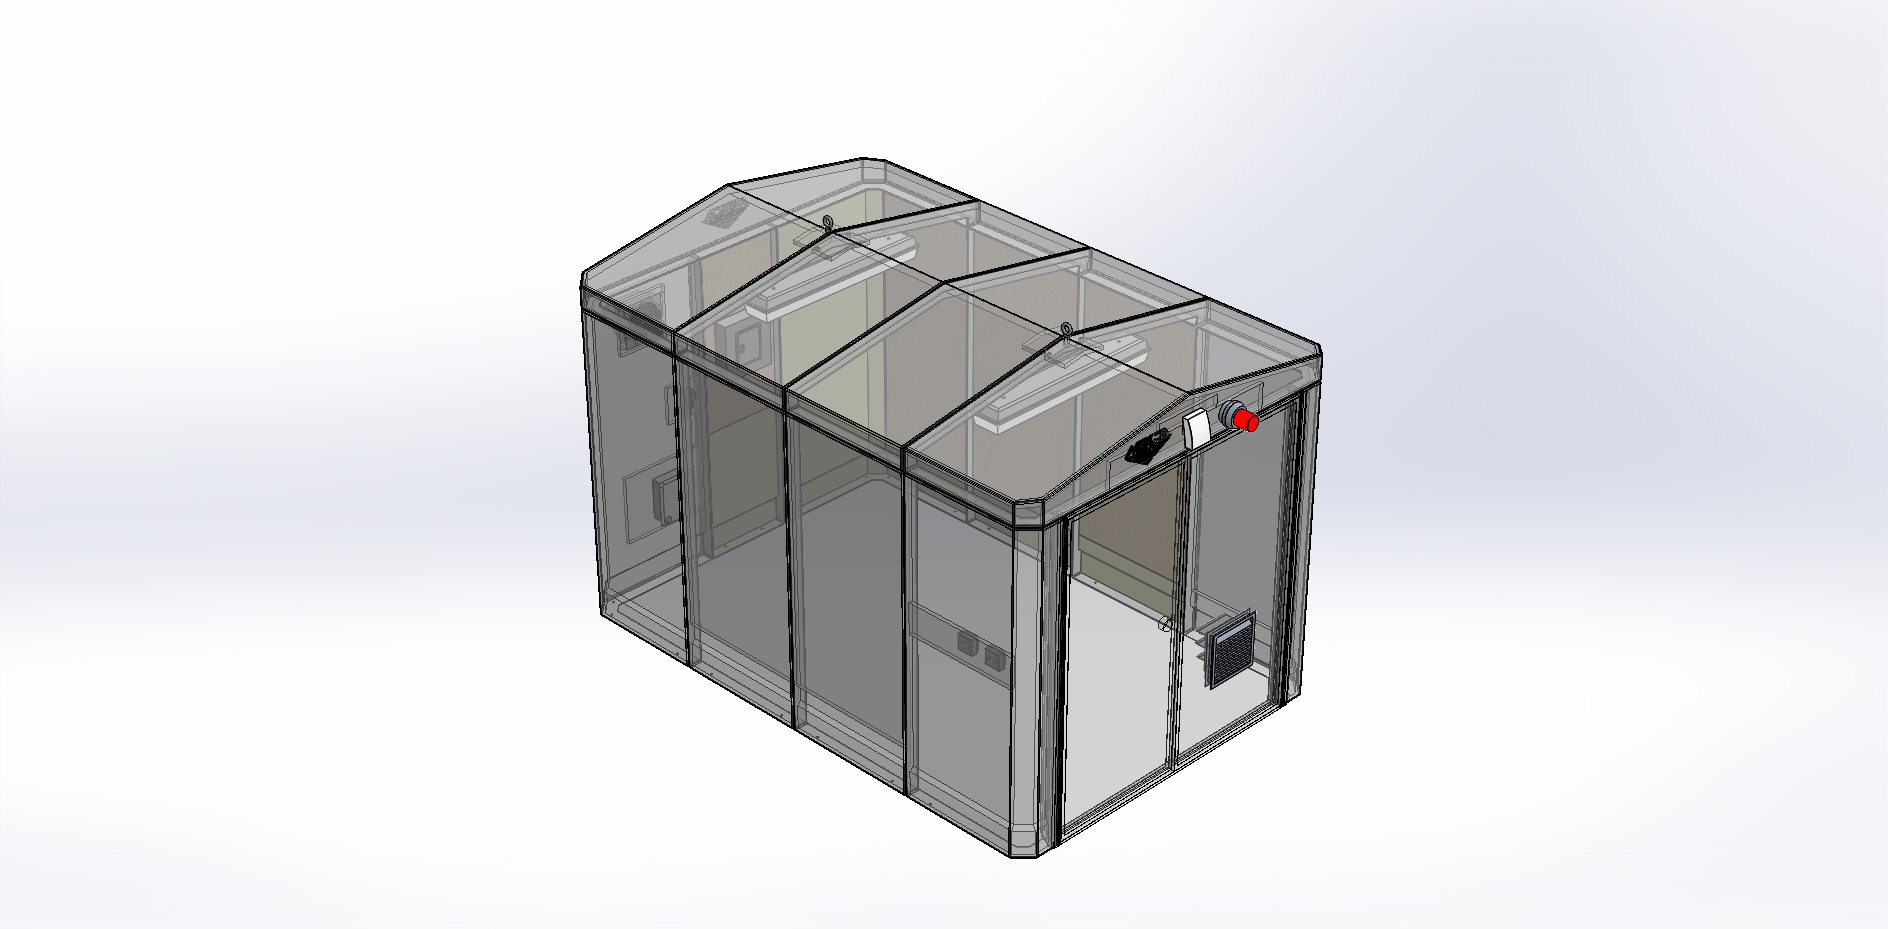 SolidWorks representation of Custom FRP Building